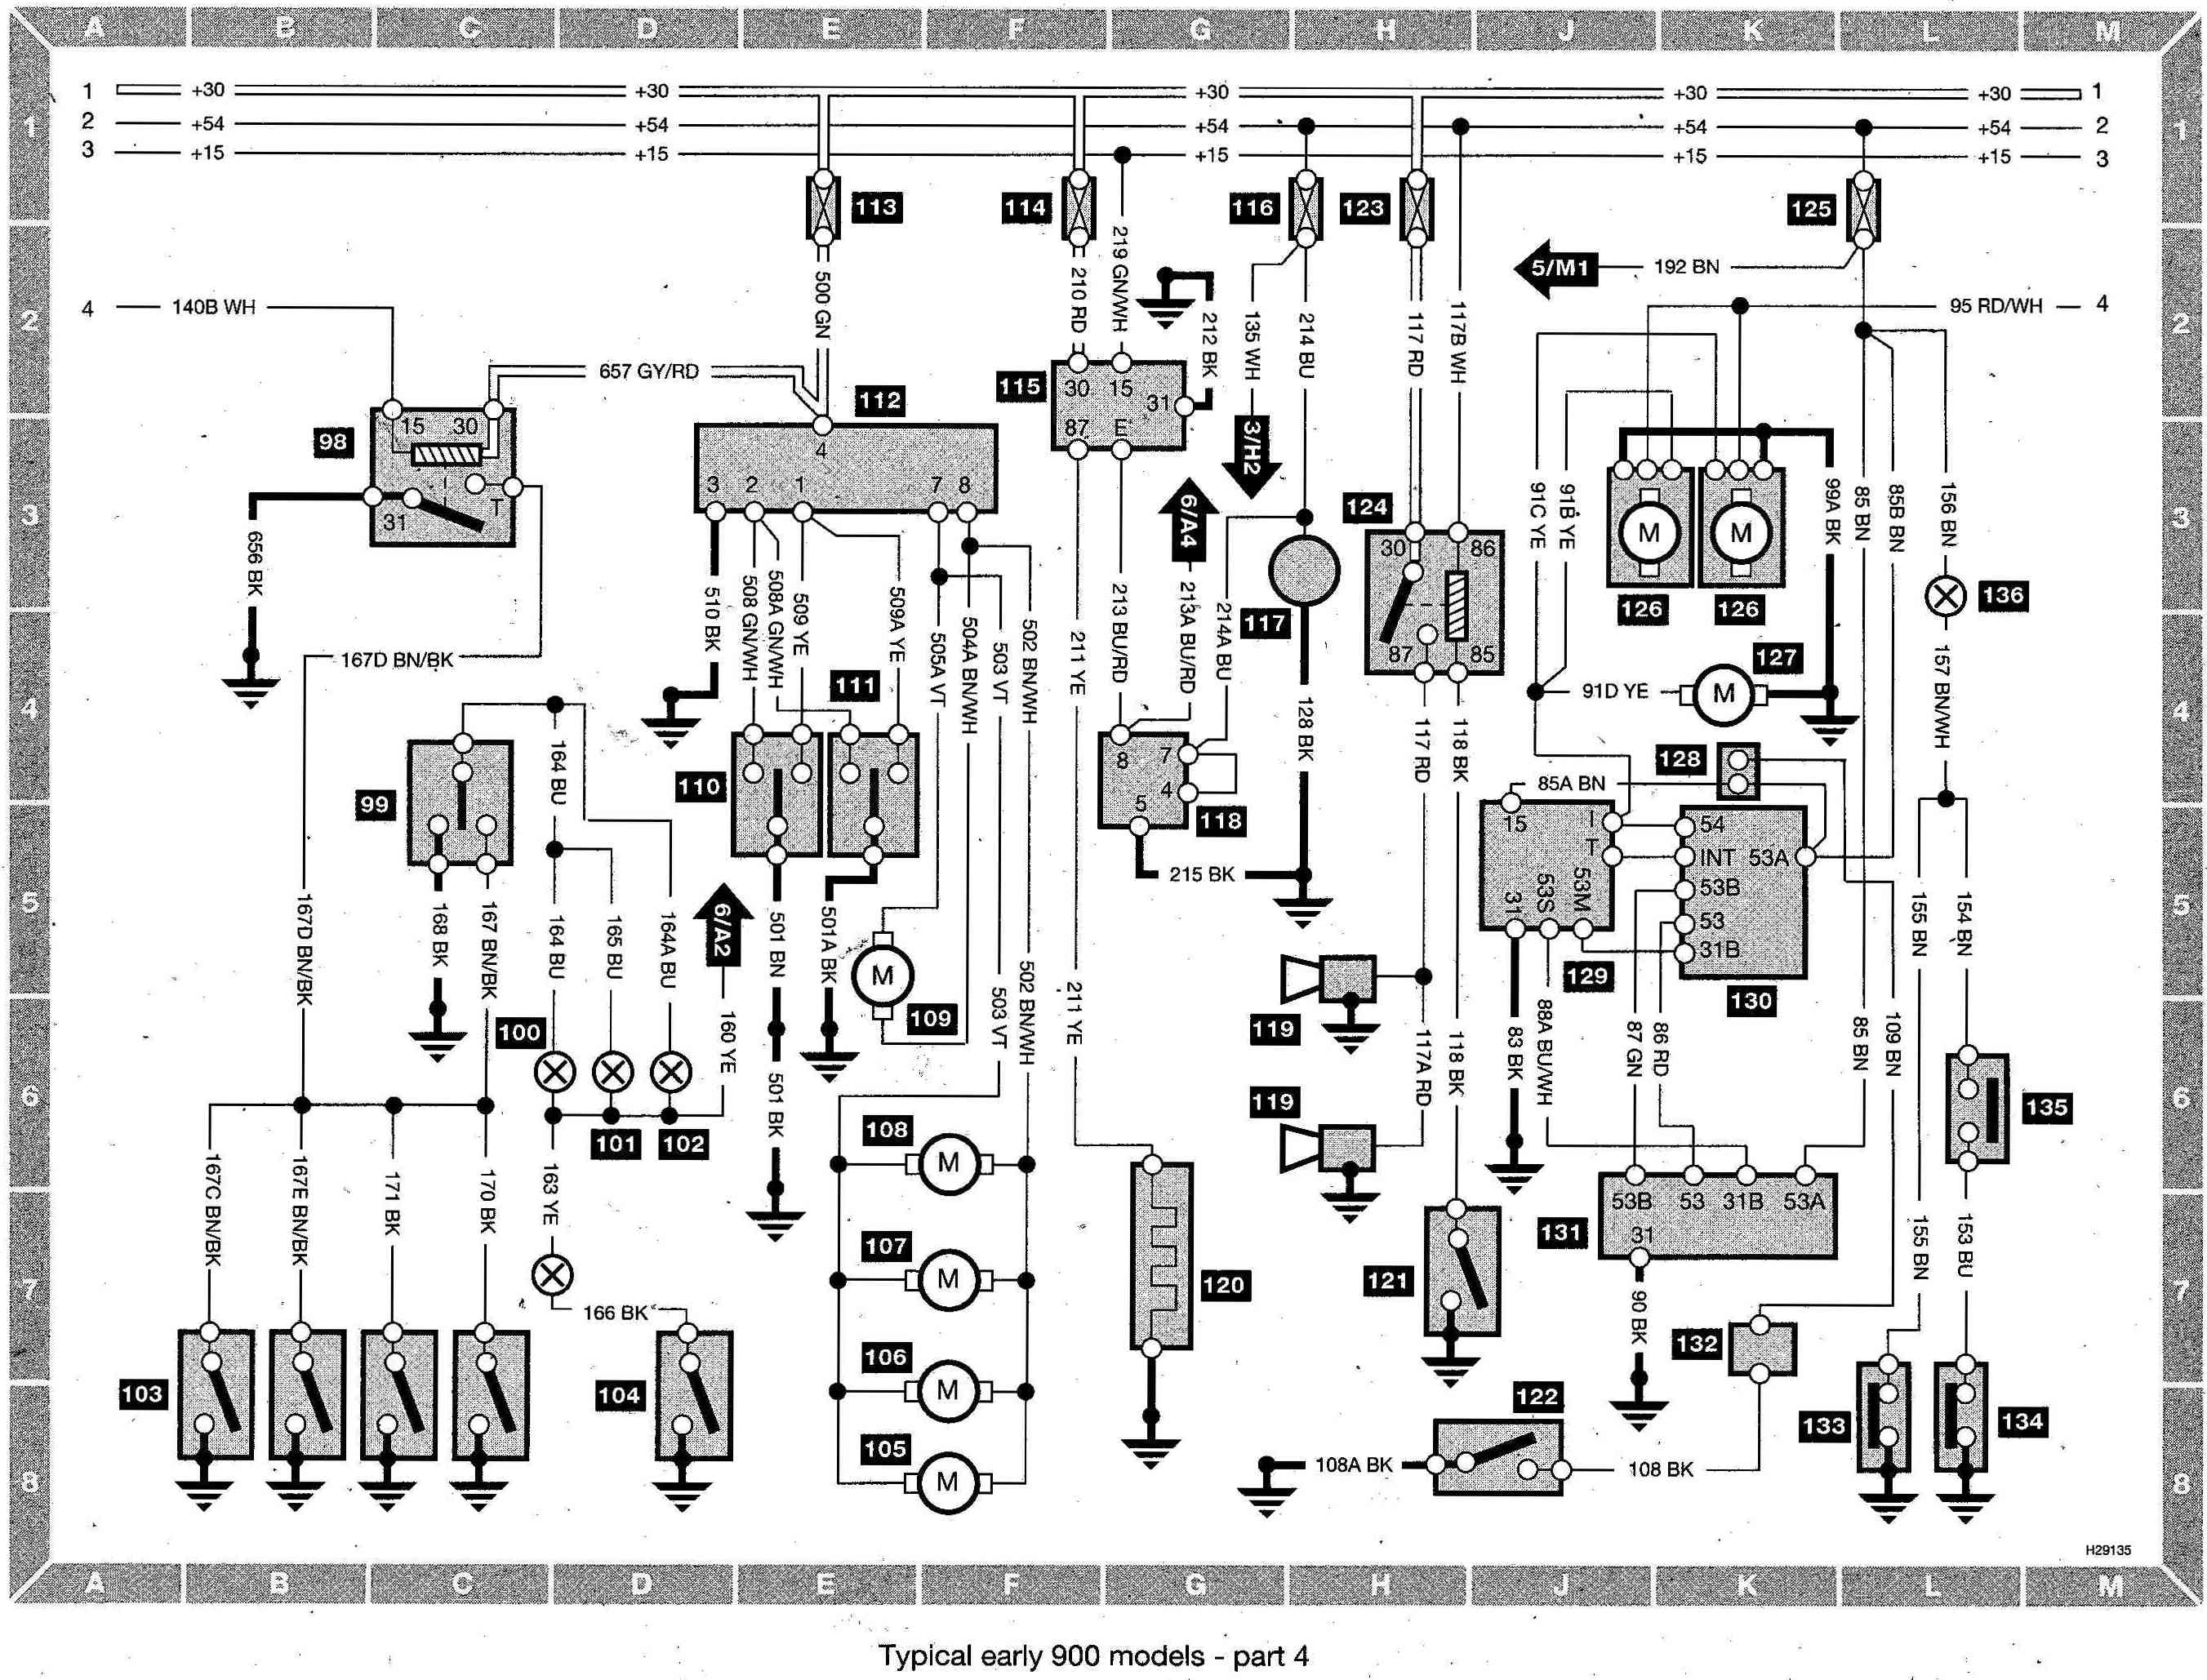 2005 Mustang Wiring Diagram in addition 6391y 07 Kia Spectra Ex Blow Dome Lights Power Locks Air Conditioner further G Tl Fuse Box Add Circuit Questions   Wire Center 2002 Acura furthermore 2004 Mitsubishi Endeavor Radio Wiring moreover 2003 Cadillac Deville Radio Wiring Diagram. on 2006 mazda tribute radio